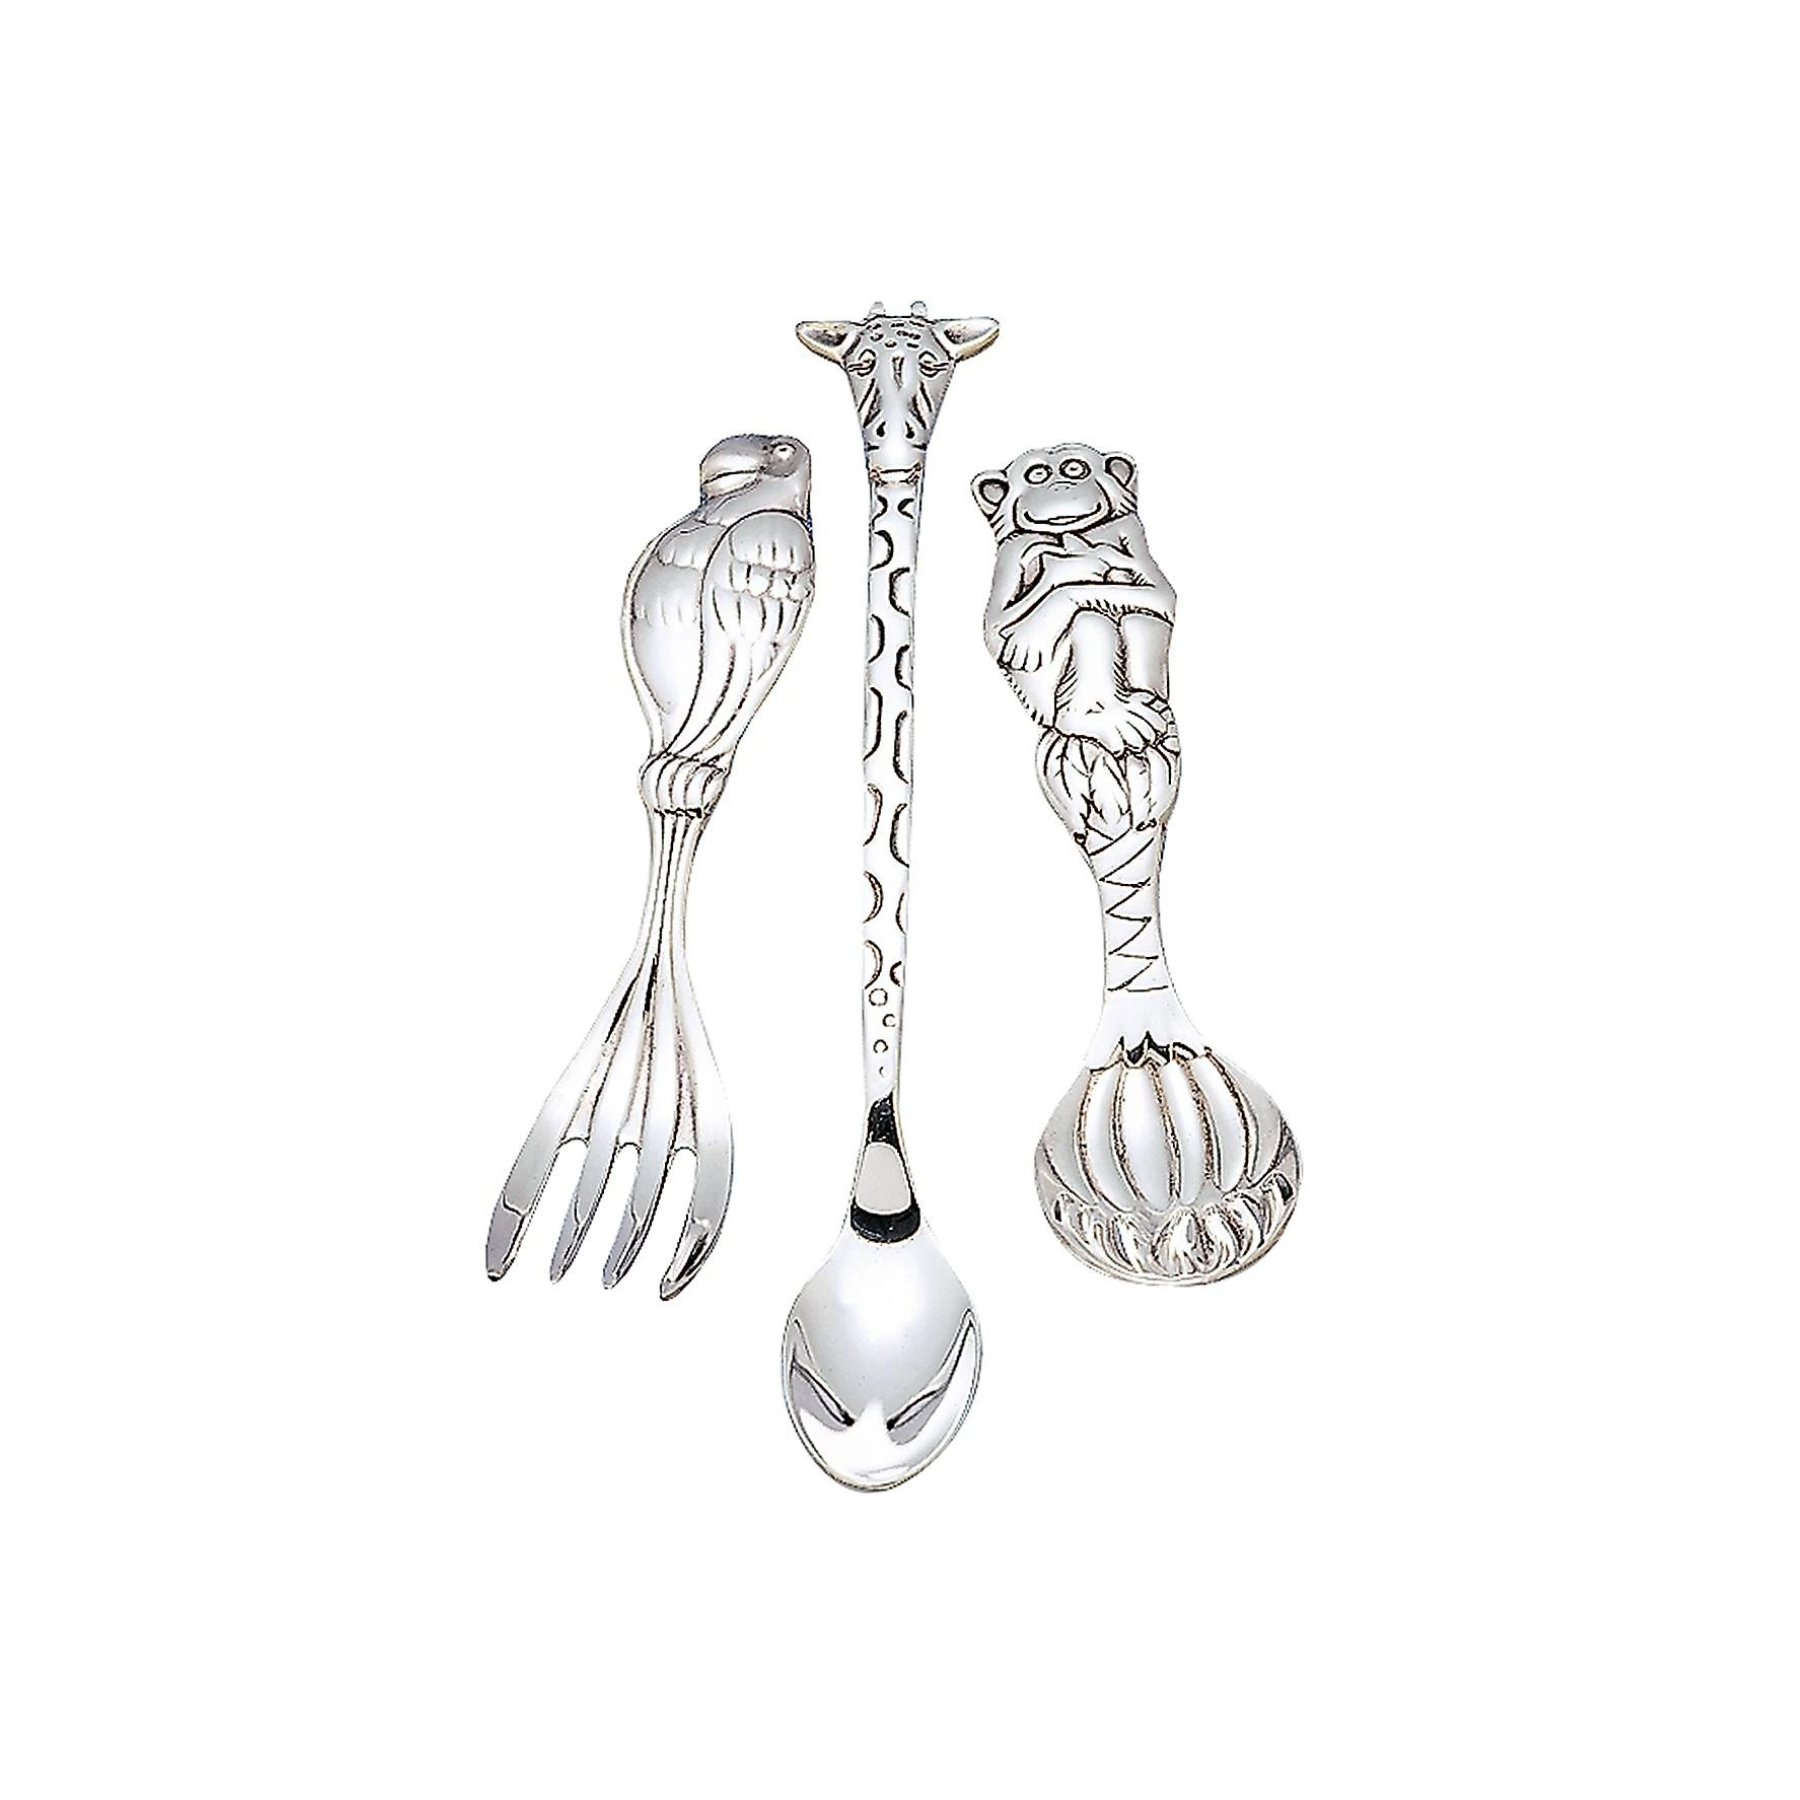 Silver Safari Silverplate 3-piece Baby Flatware Set